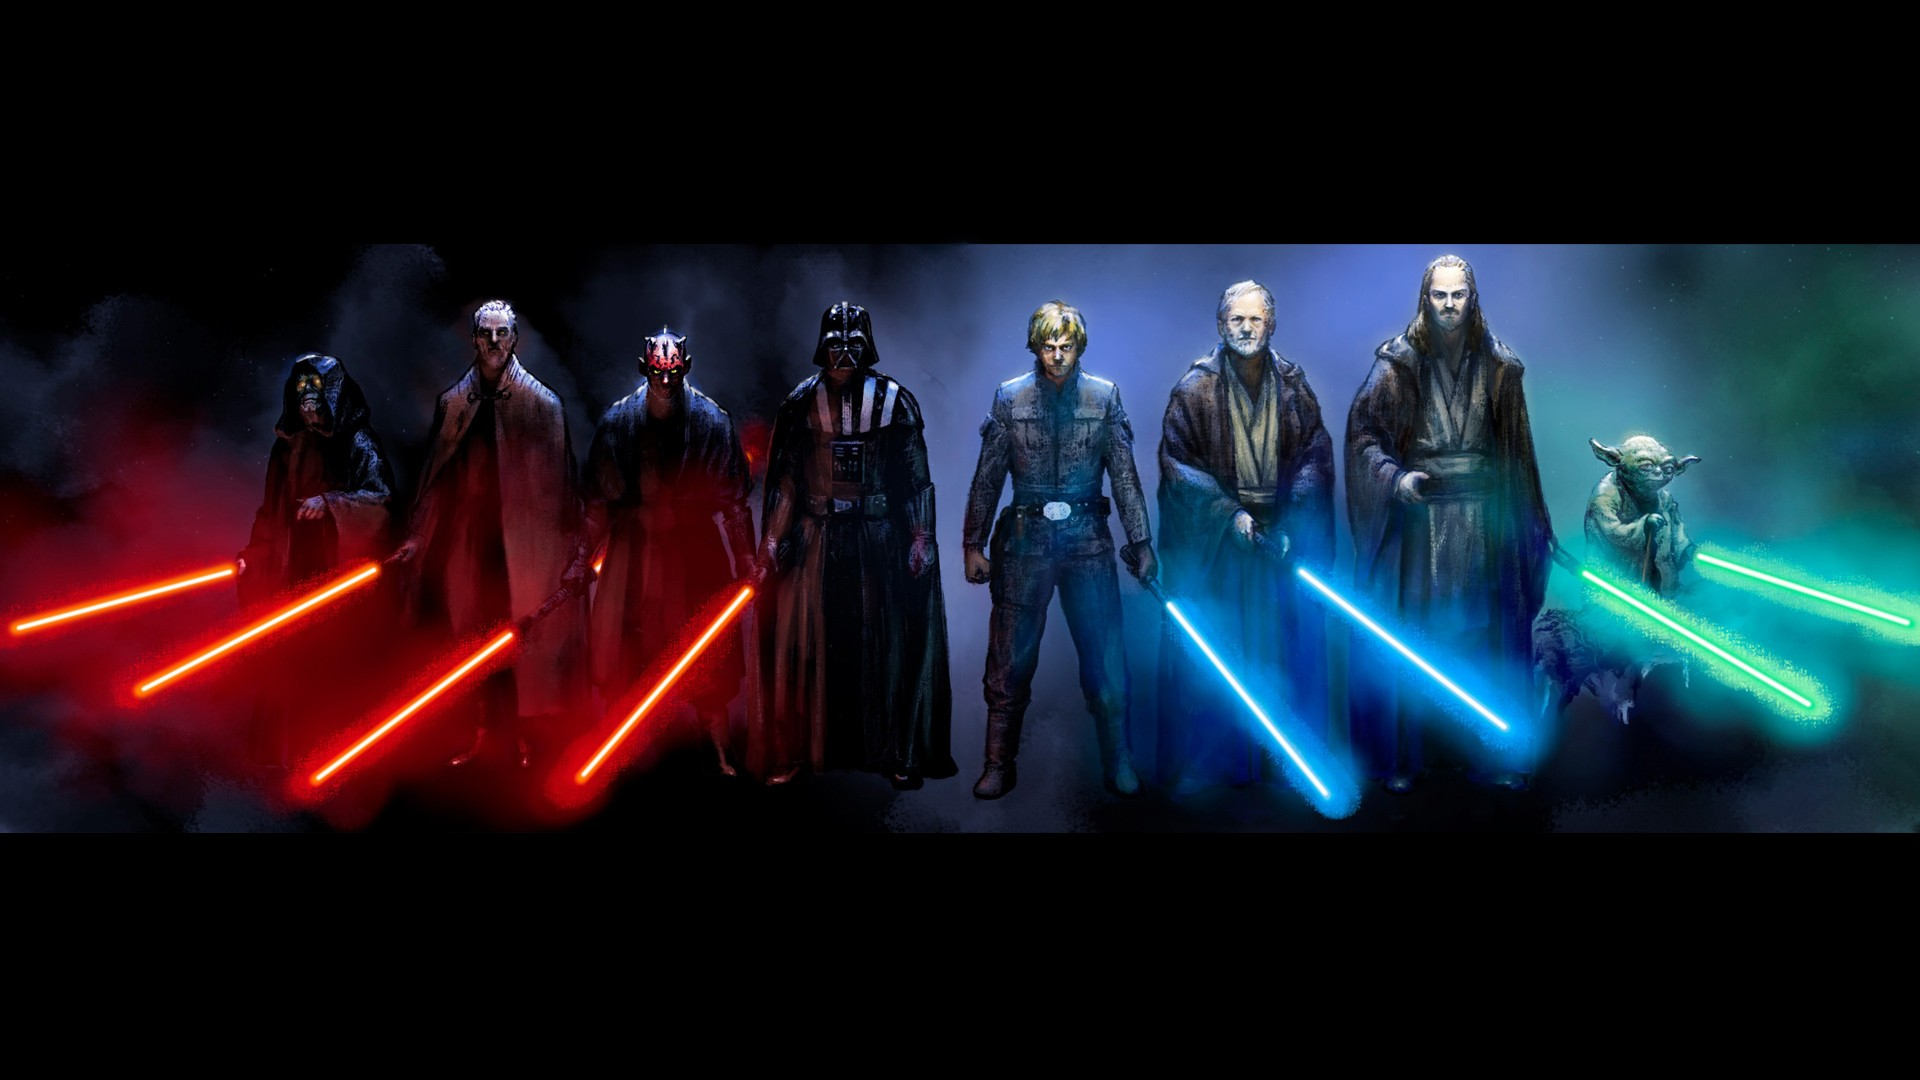 Star Wars Wallpaper 1920X1080 189025 1920x1080